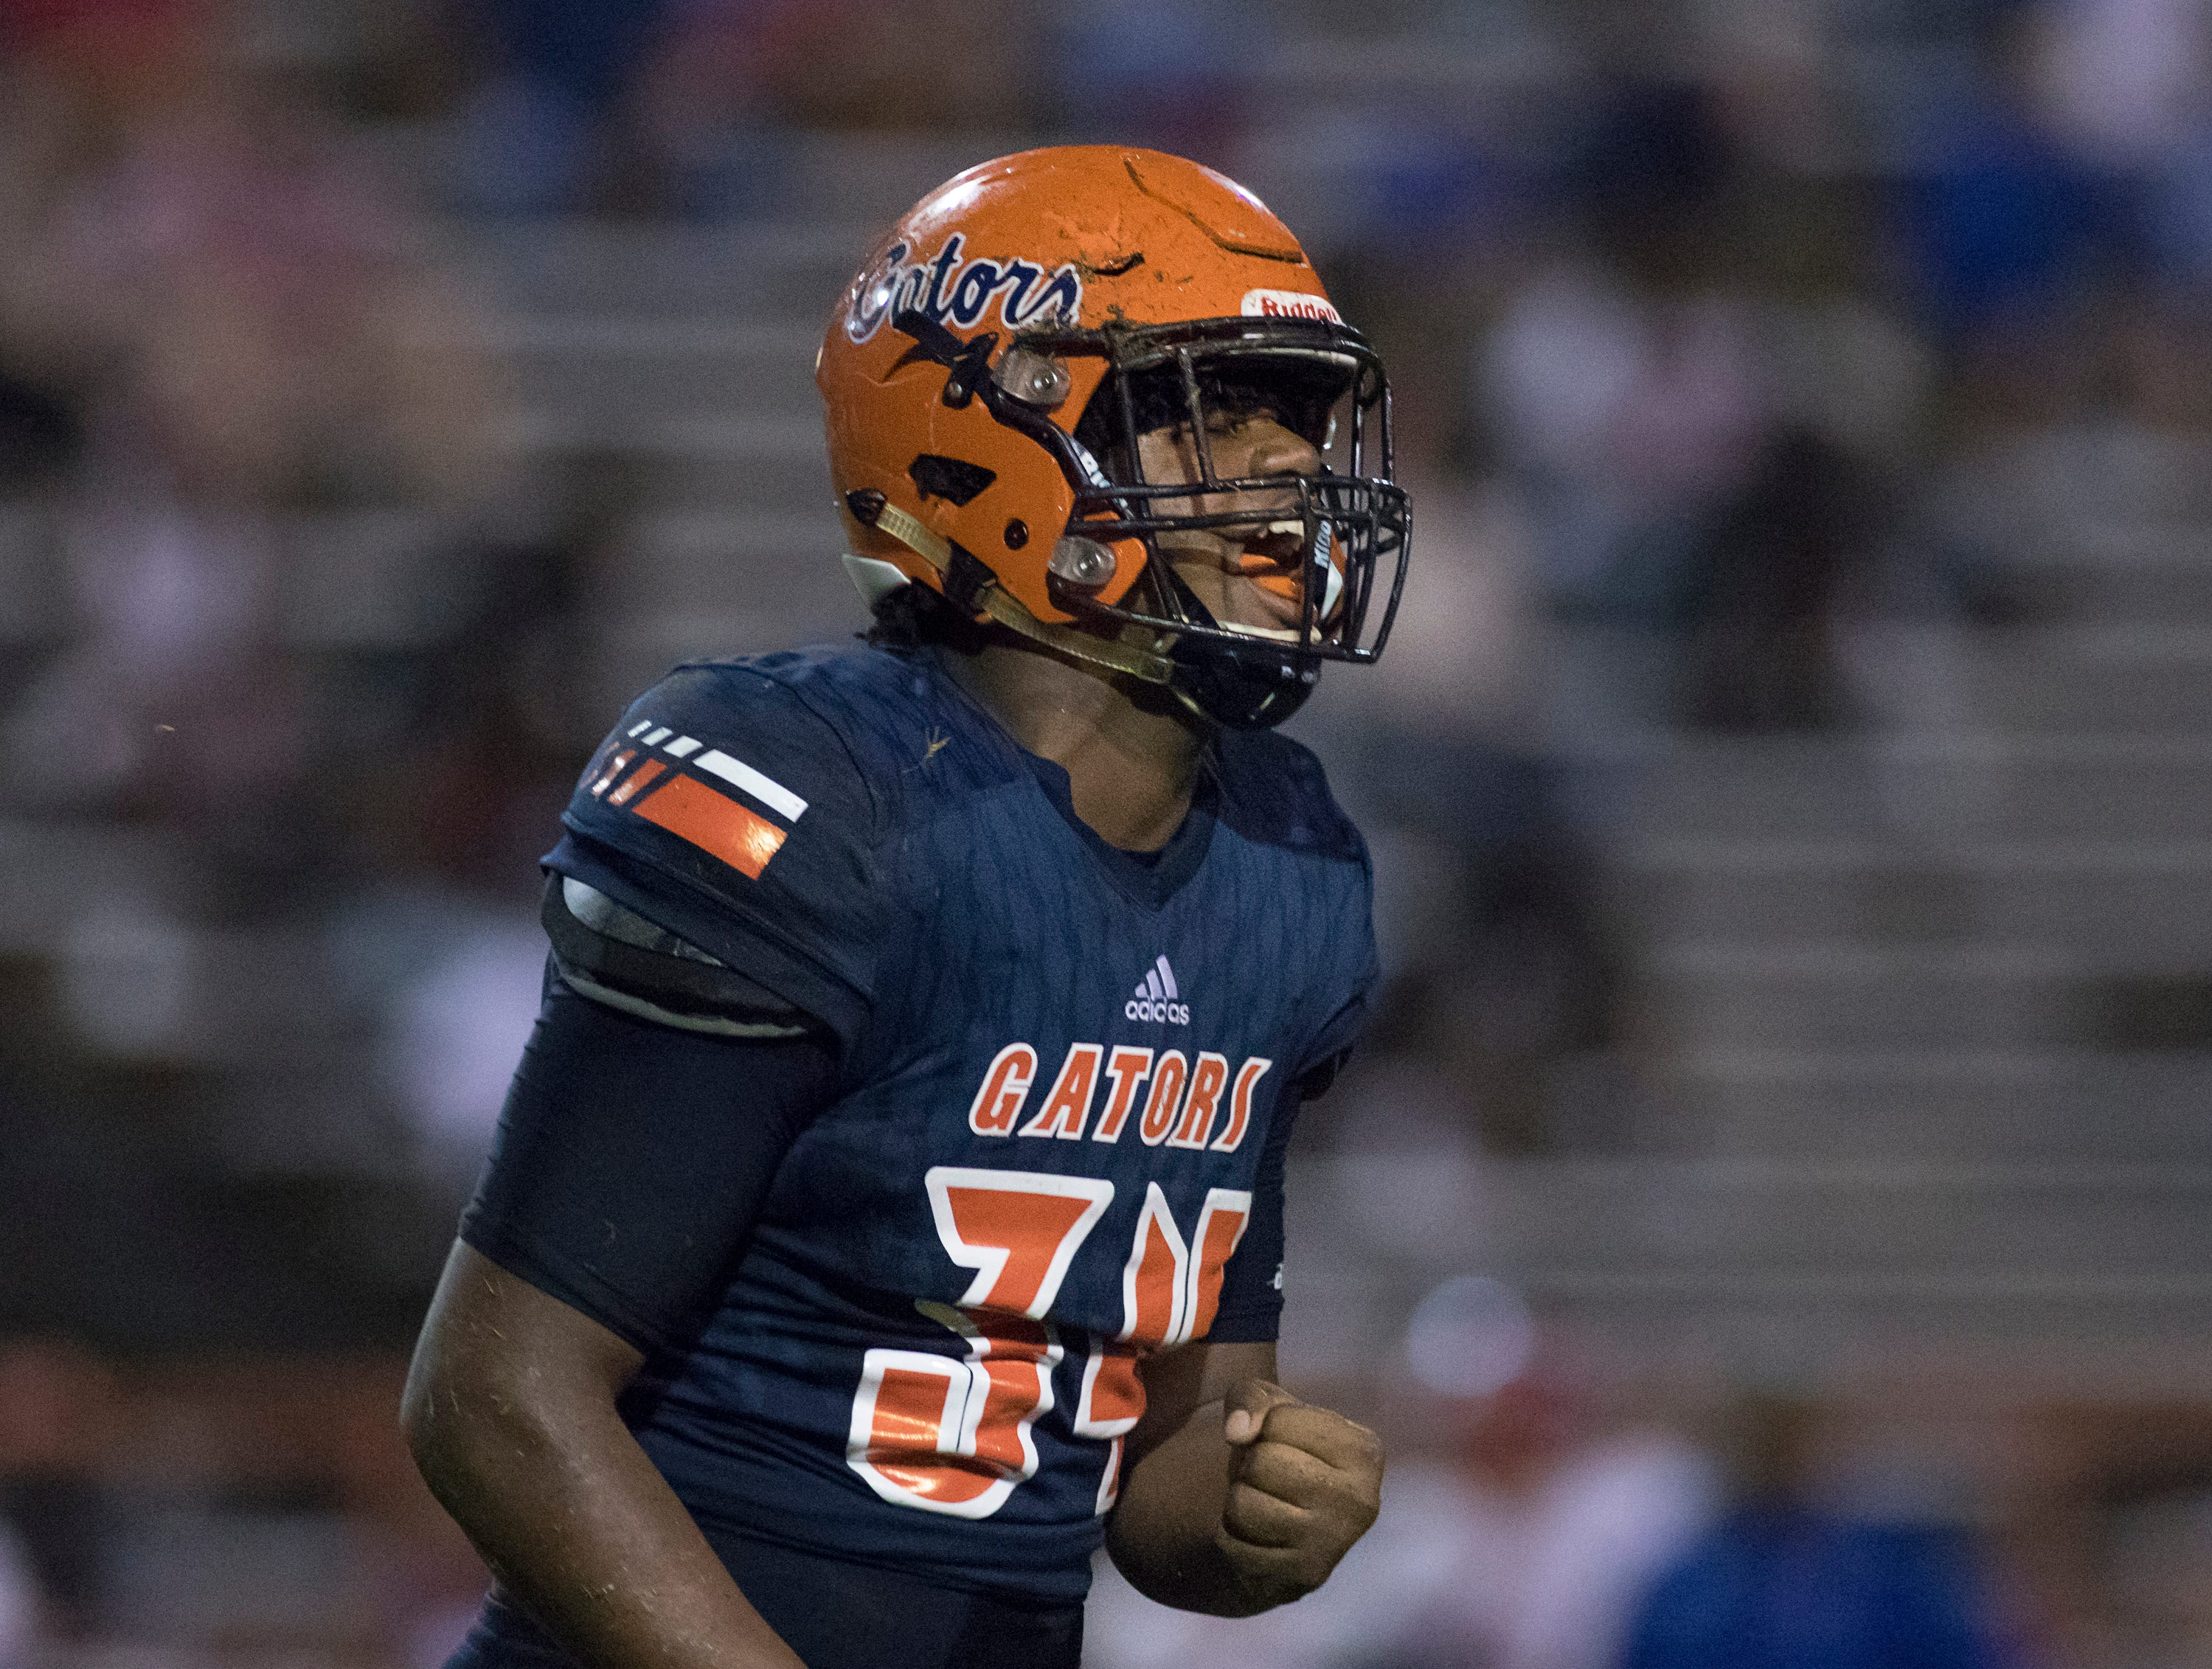 Xavier Johnson (34) celebrates after the Gators recover an Eagles fumble during the Pine Forest vs Escambia football game at Escambia High School in Pensacola on Friday, September 28, 2018.